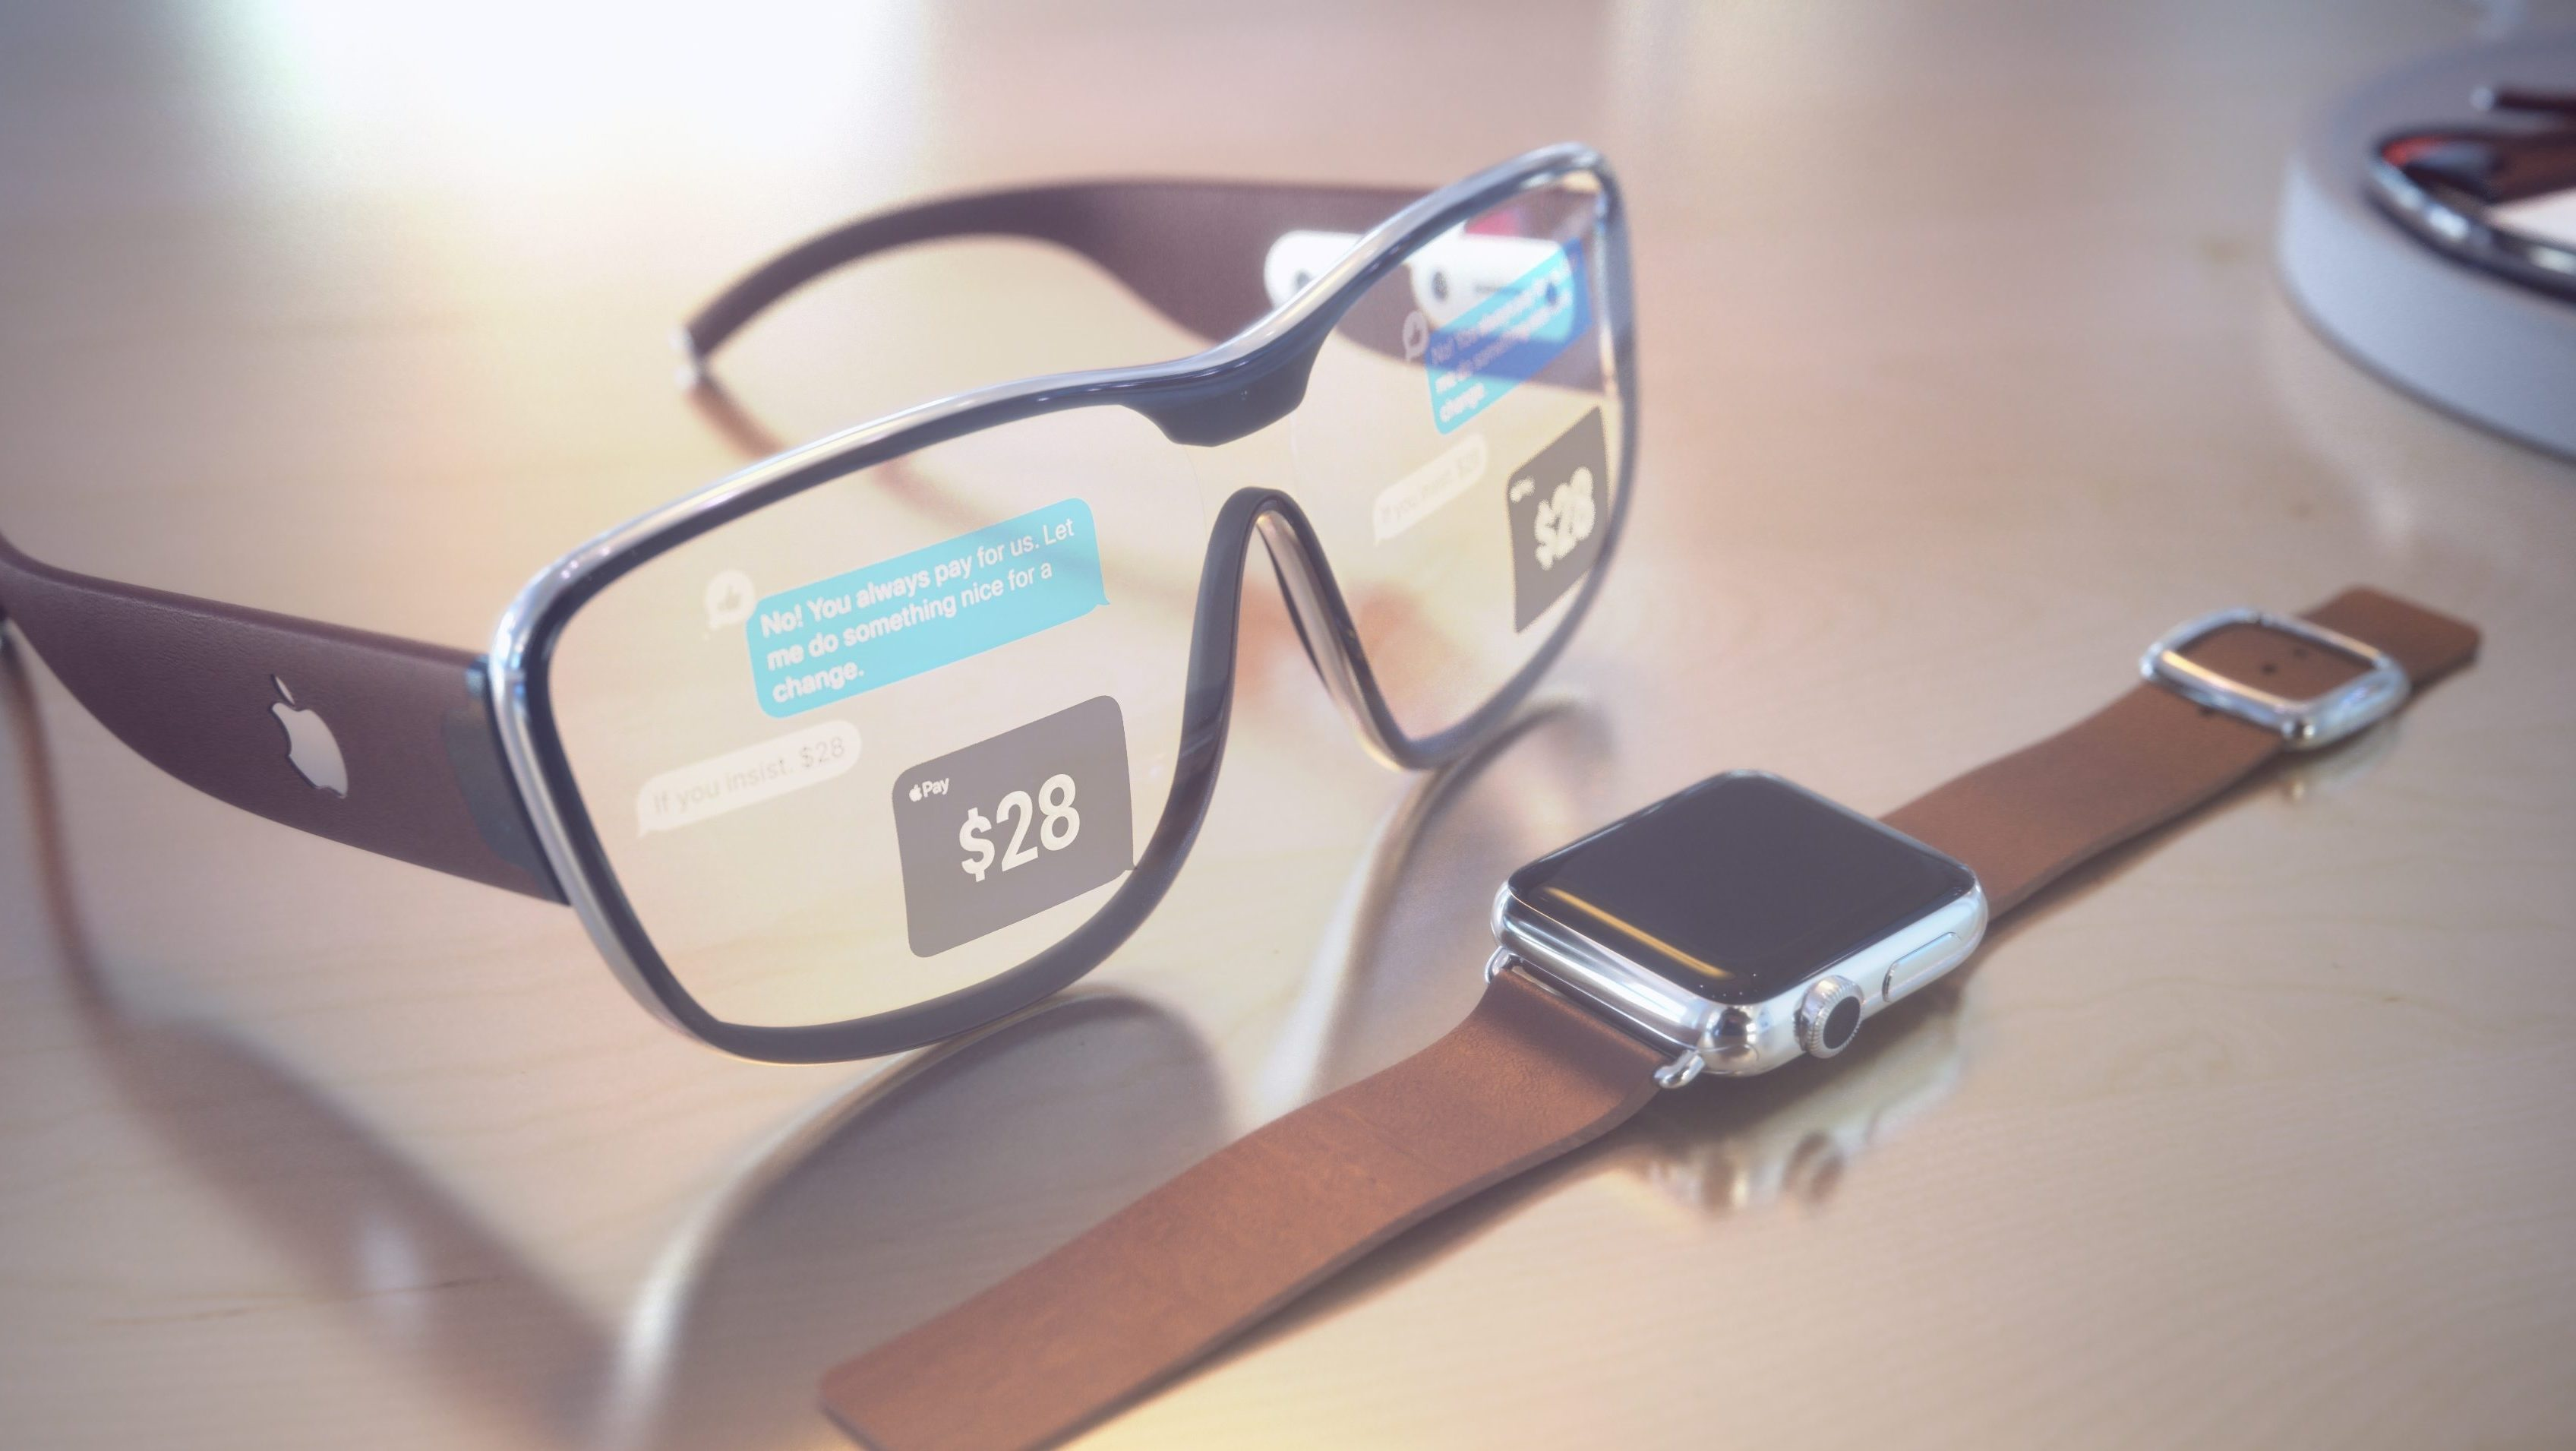 Apple Smart Glasses Updates New Protective Mode to make AR Glasses More Durable